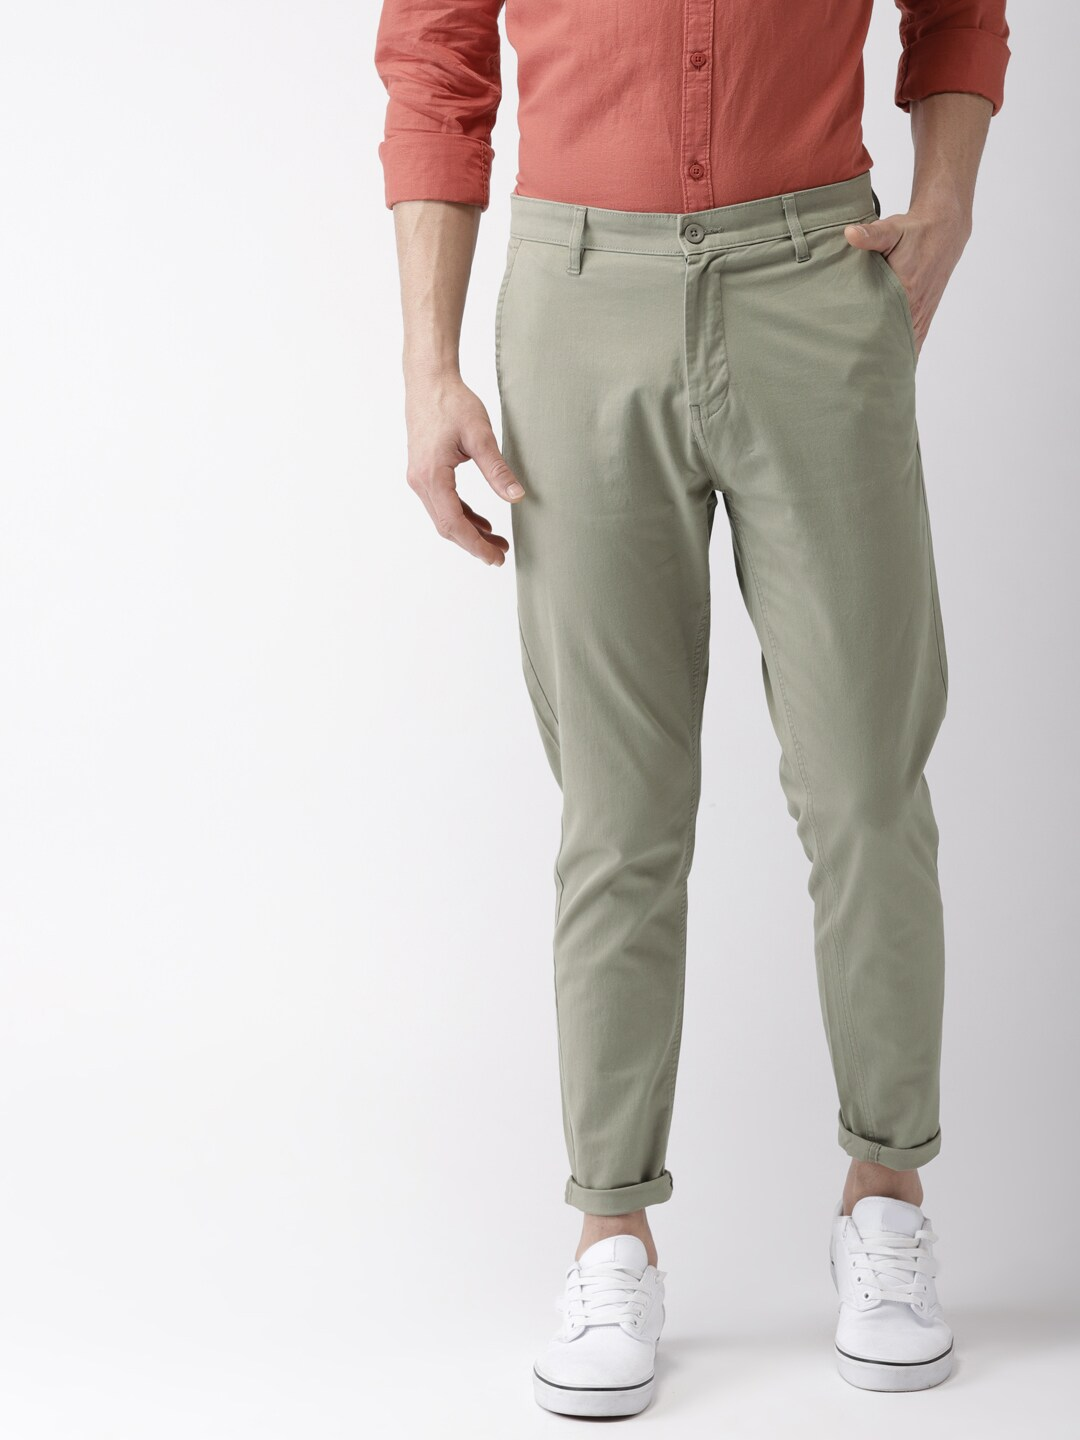 Men Casual Trousers - Buy Casual Pants for Men in India - Myntra 89933dc0e